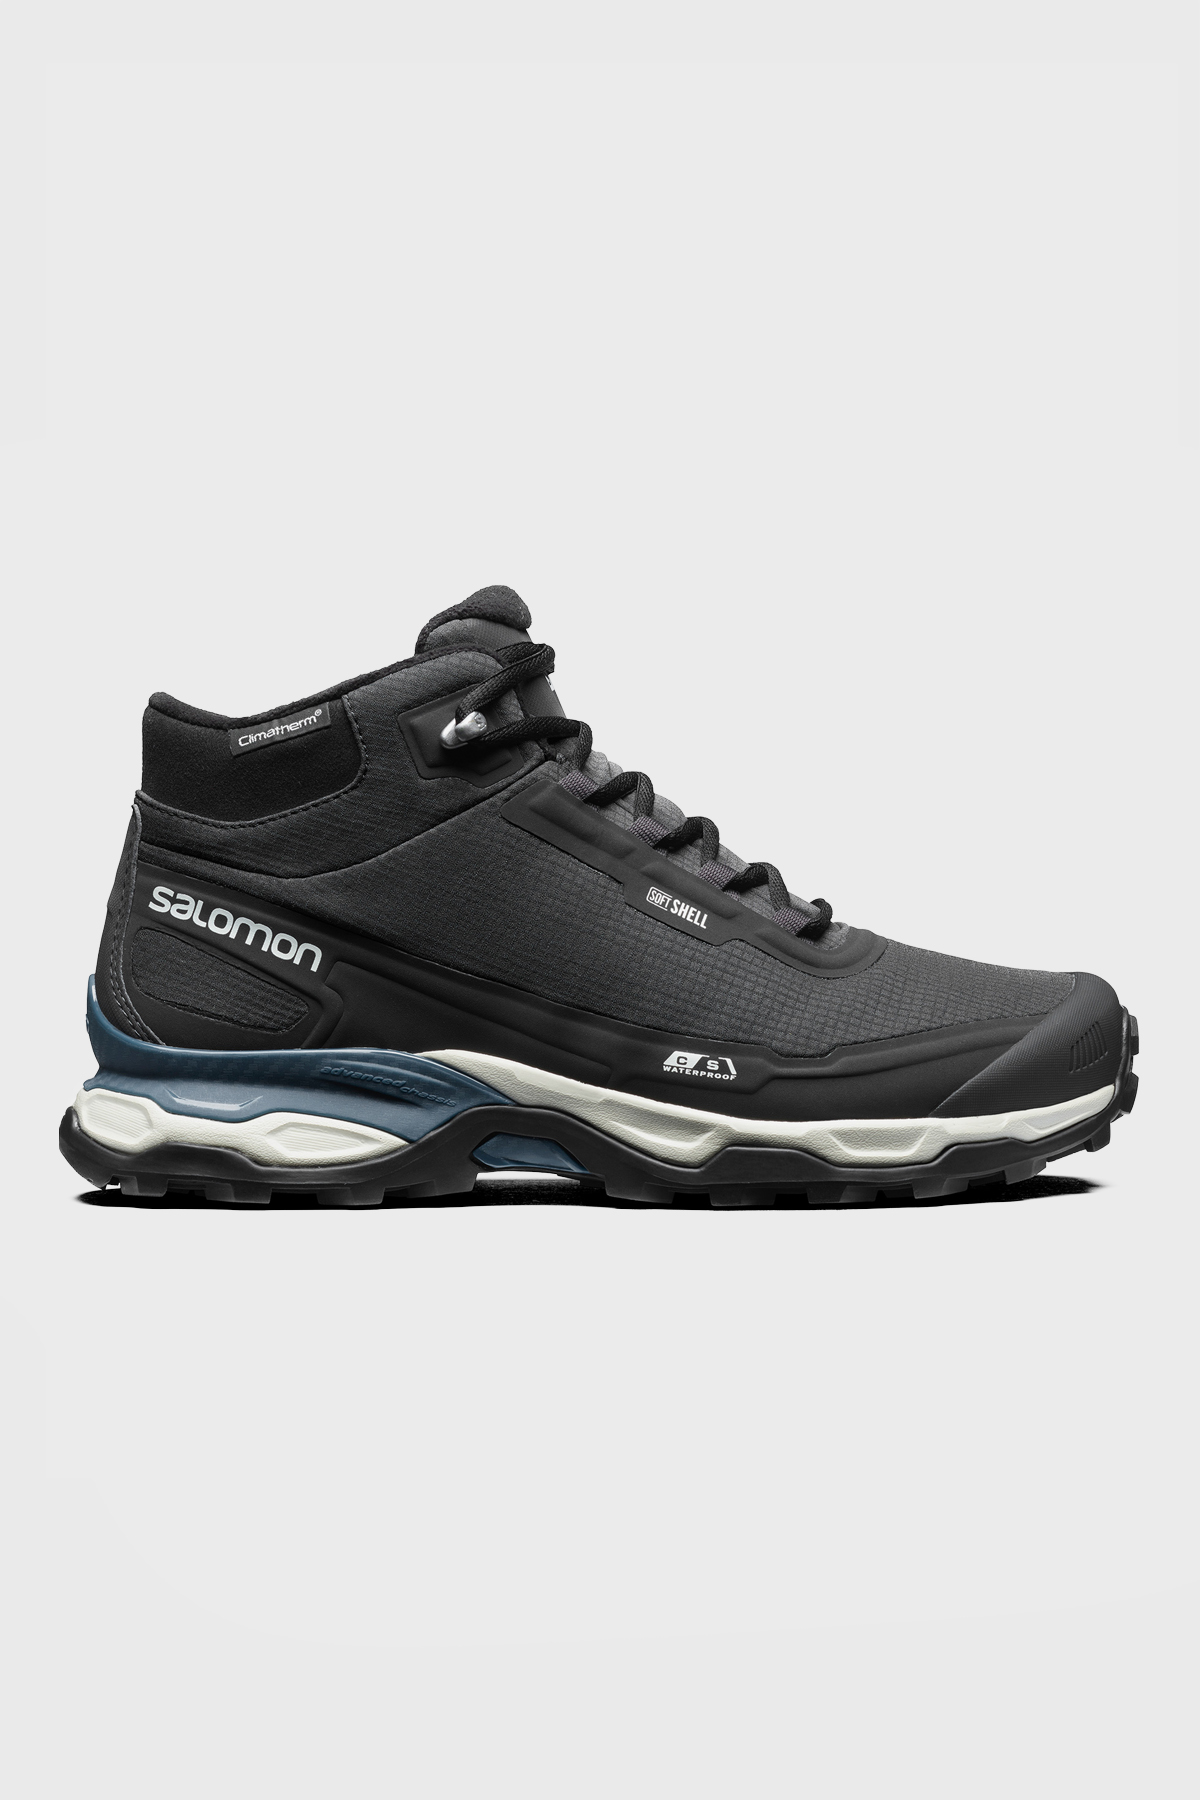 Salomon - Shelter CSWP ADV - Ebony Phantom Copen Blue